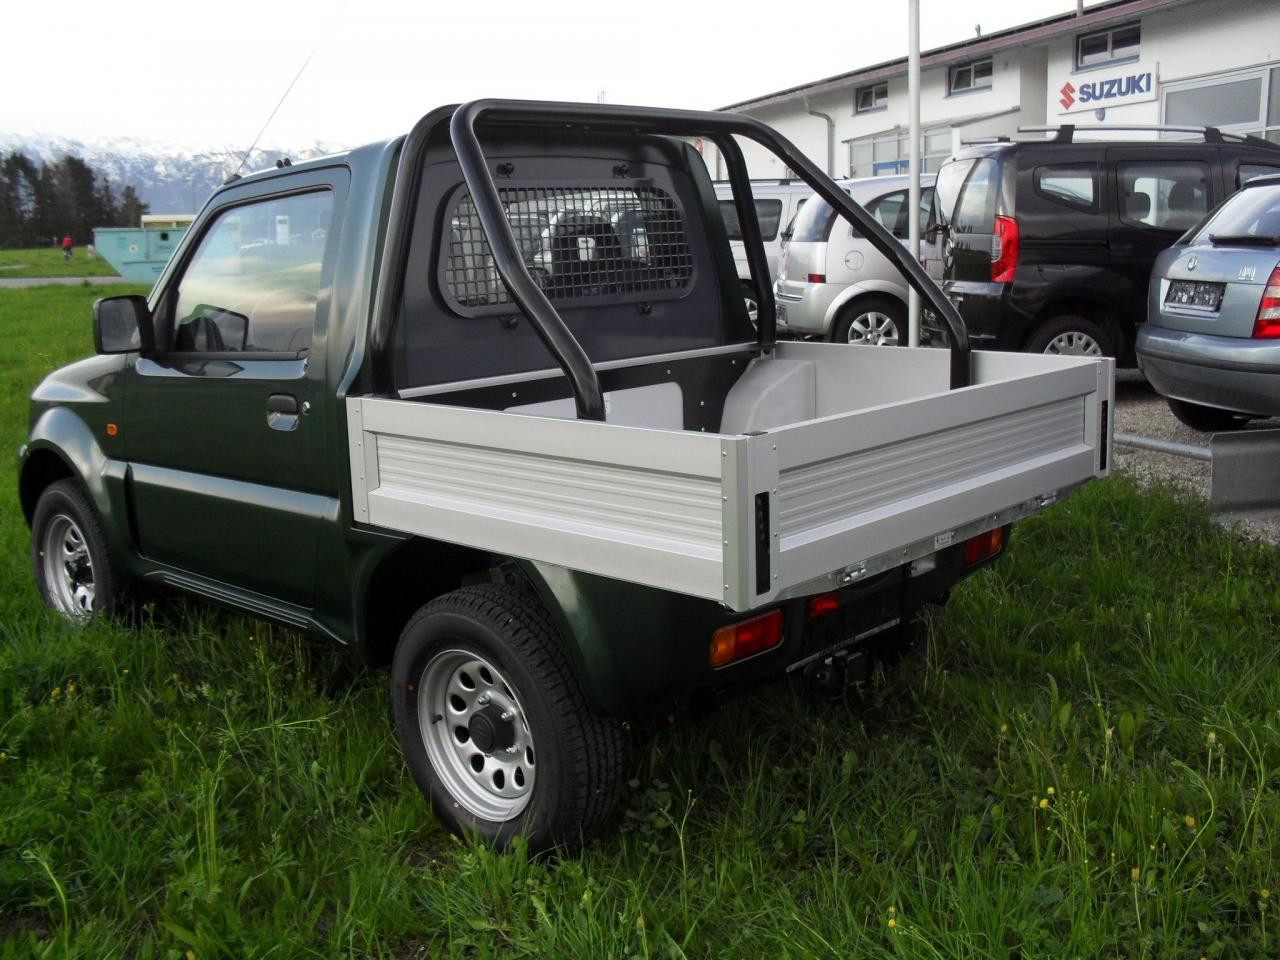 suzuki jimny pick up club motorrad fotos motorrad bilder. Black Bedroom Furniture Sets. Home Design Ideas